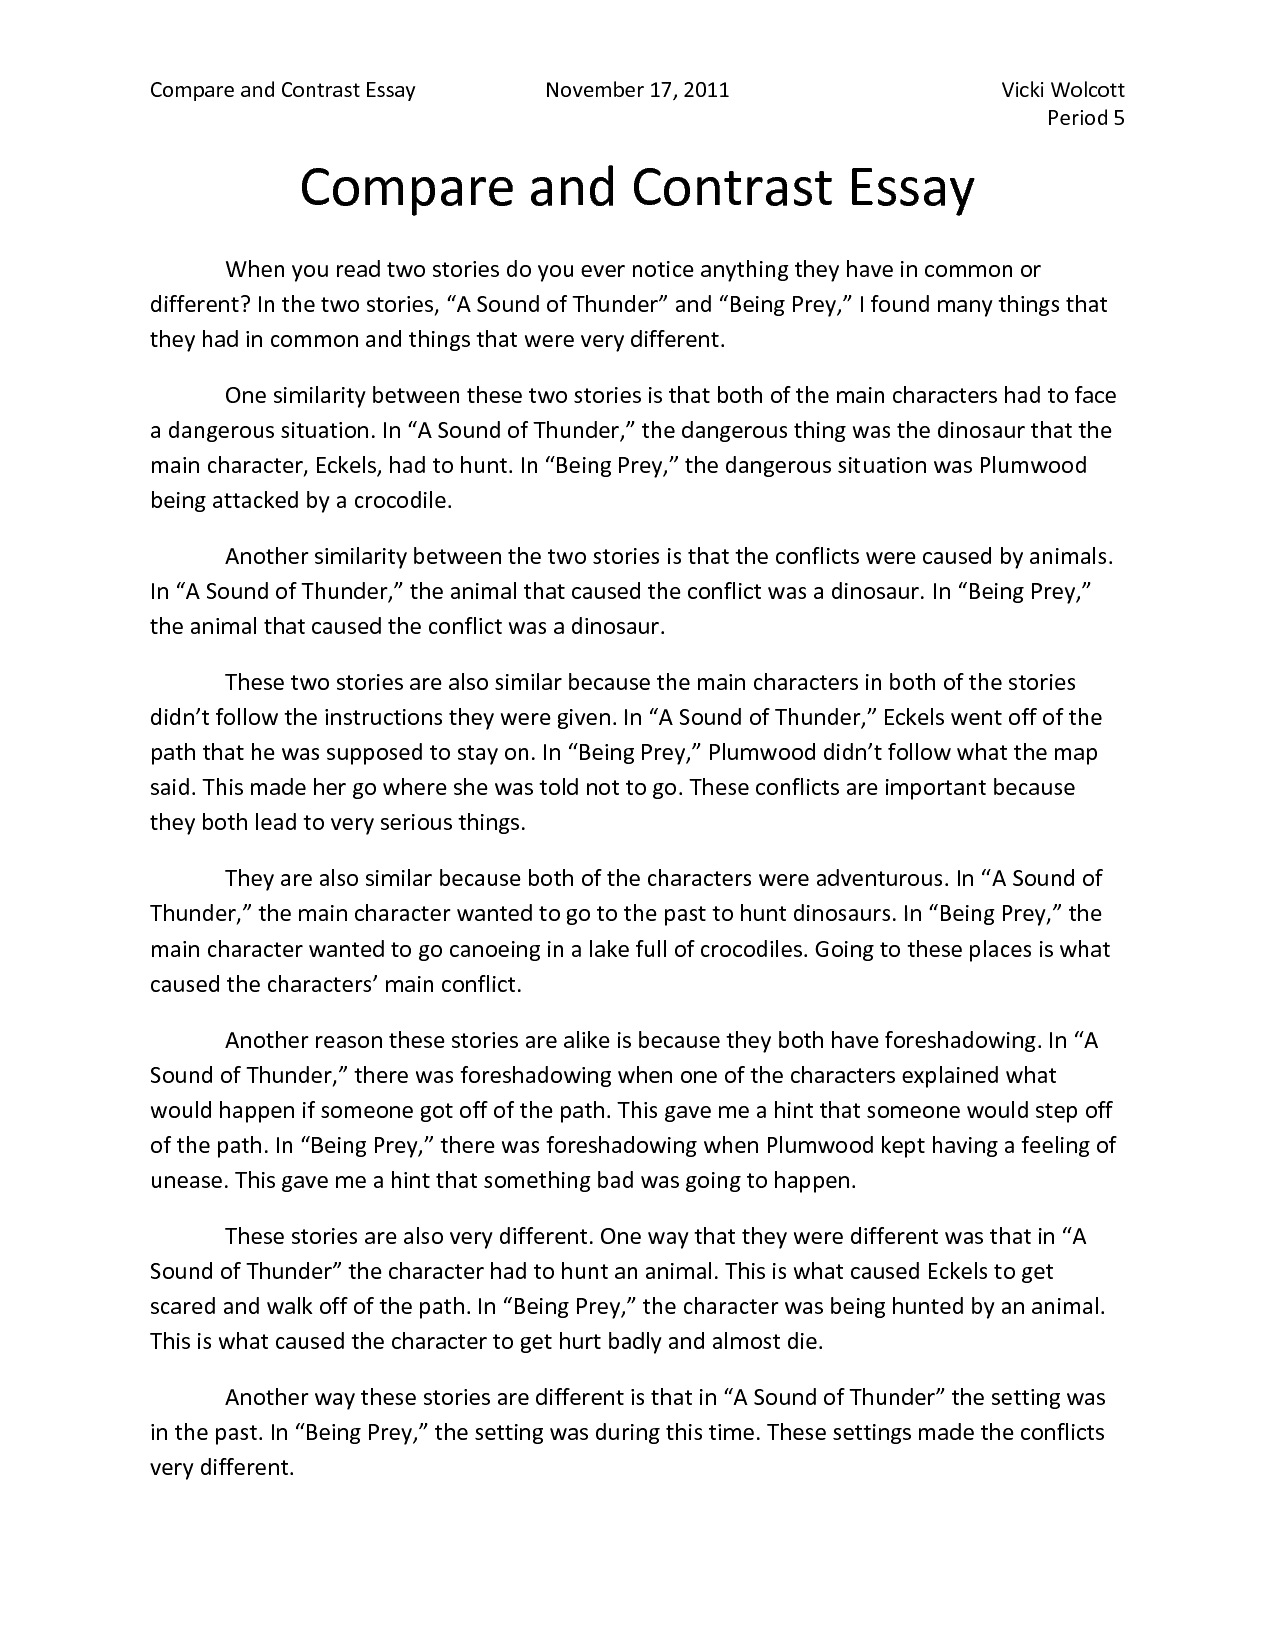 essays on comparison and contrast ideas Compare and contrast essays are often assigned to students steps sample outline sample to do research so you can better compare and contrast the two topics.